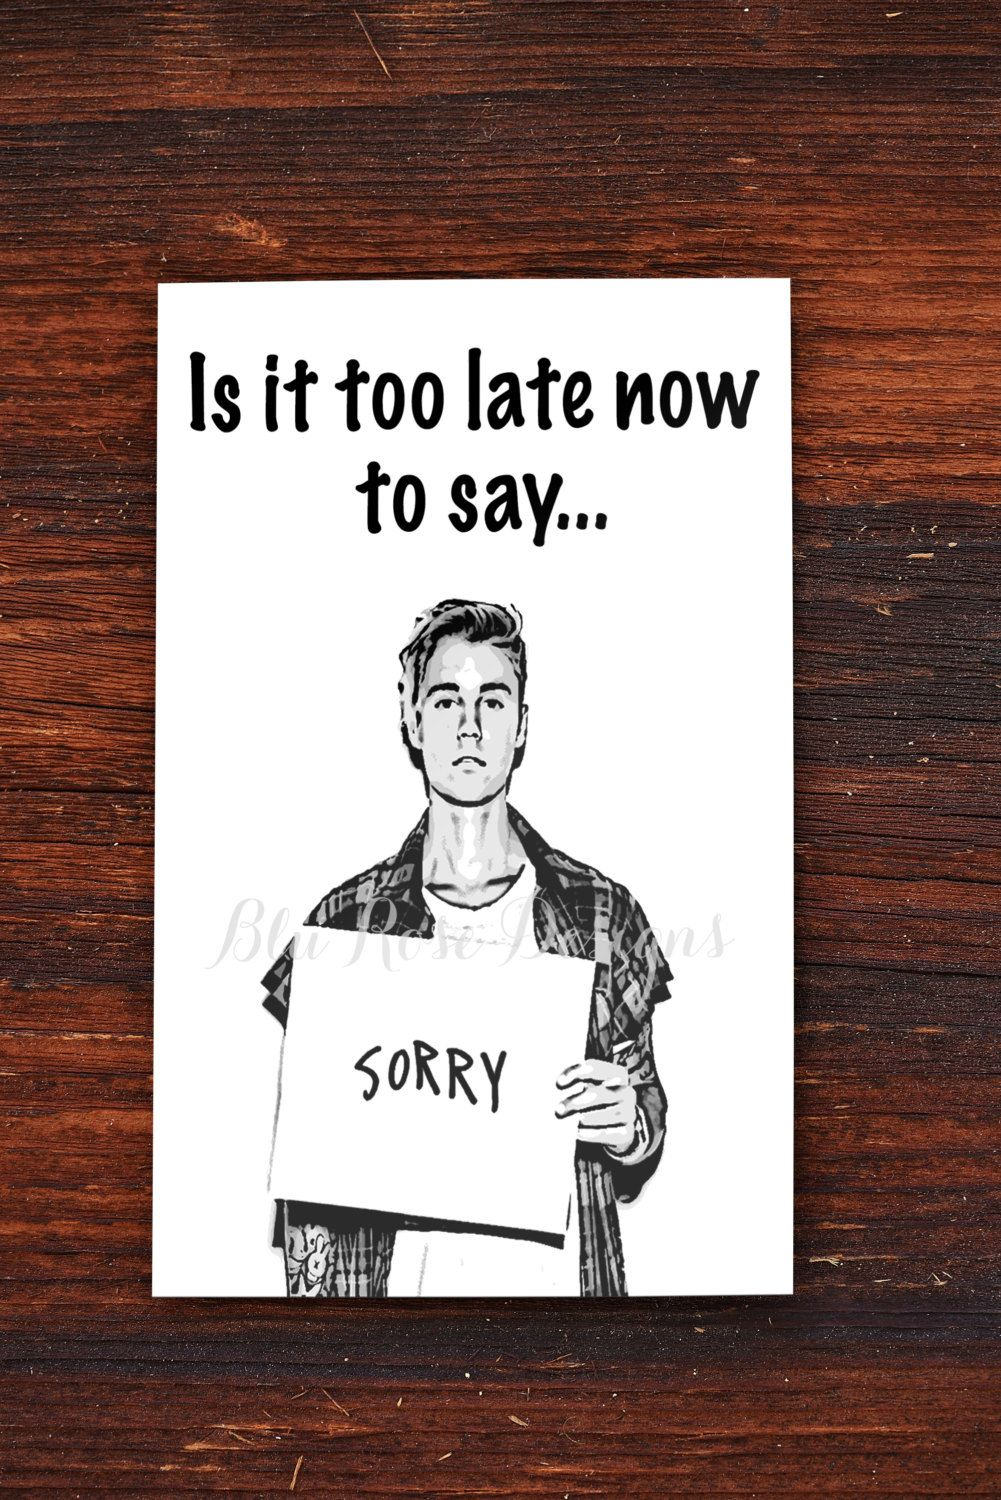 Printable Sorry Cards Yun56co Ebc0060465426624c89ebf2eebbff1aa Printable  Sorry Cards Free Printable Apology Cards Free Printable Apology Cards  Free Printable Sorry Cards